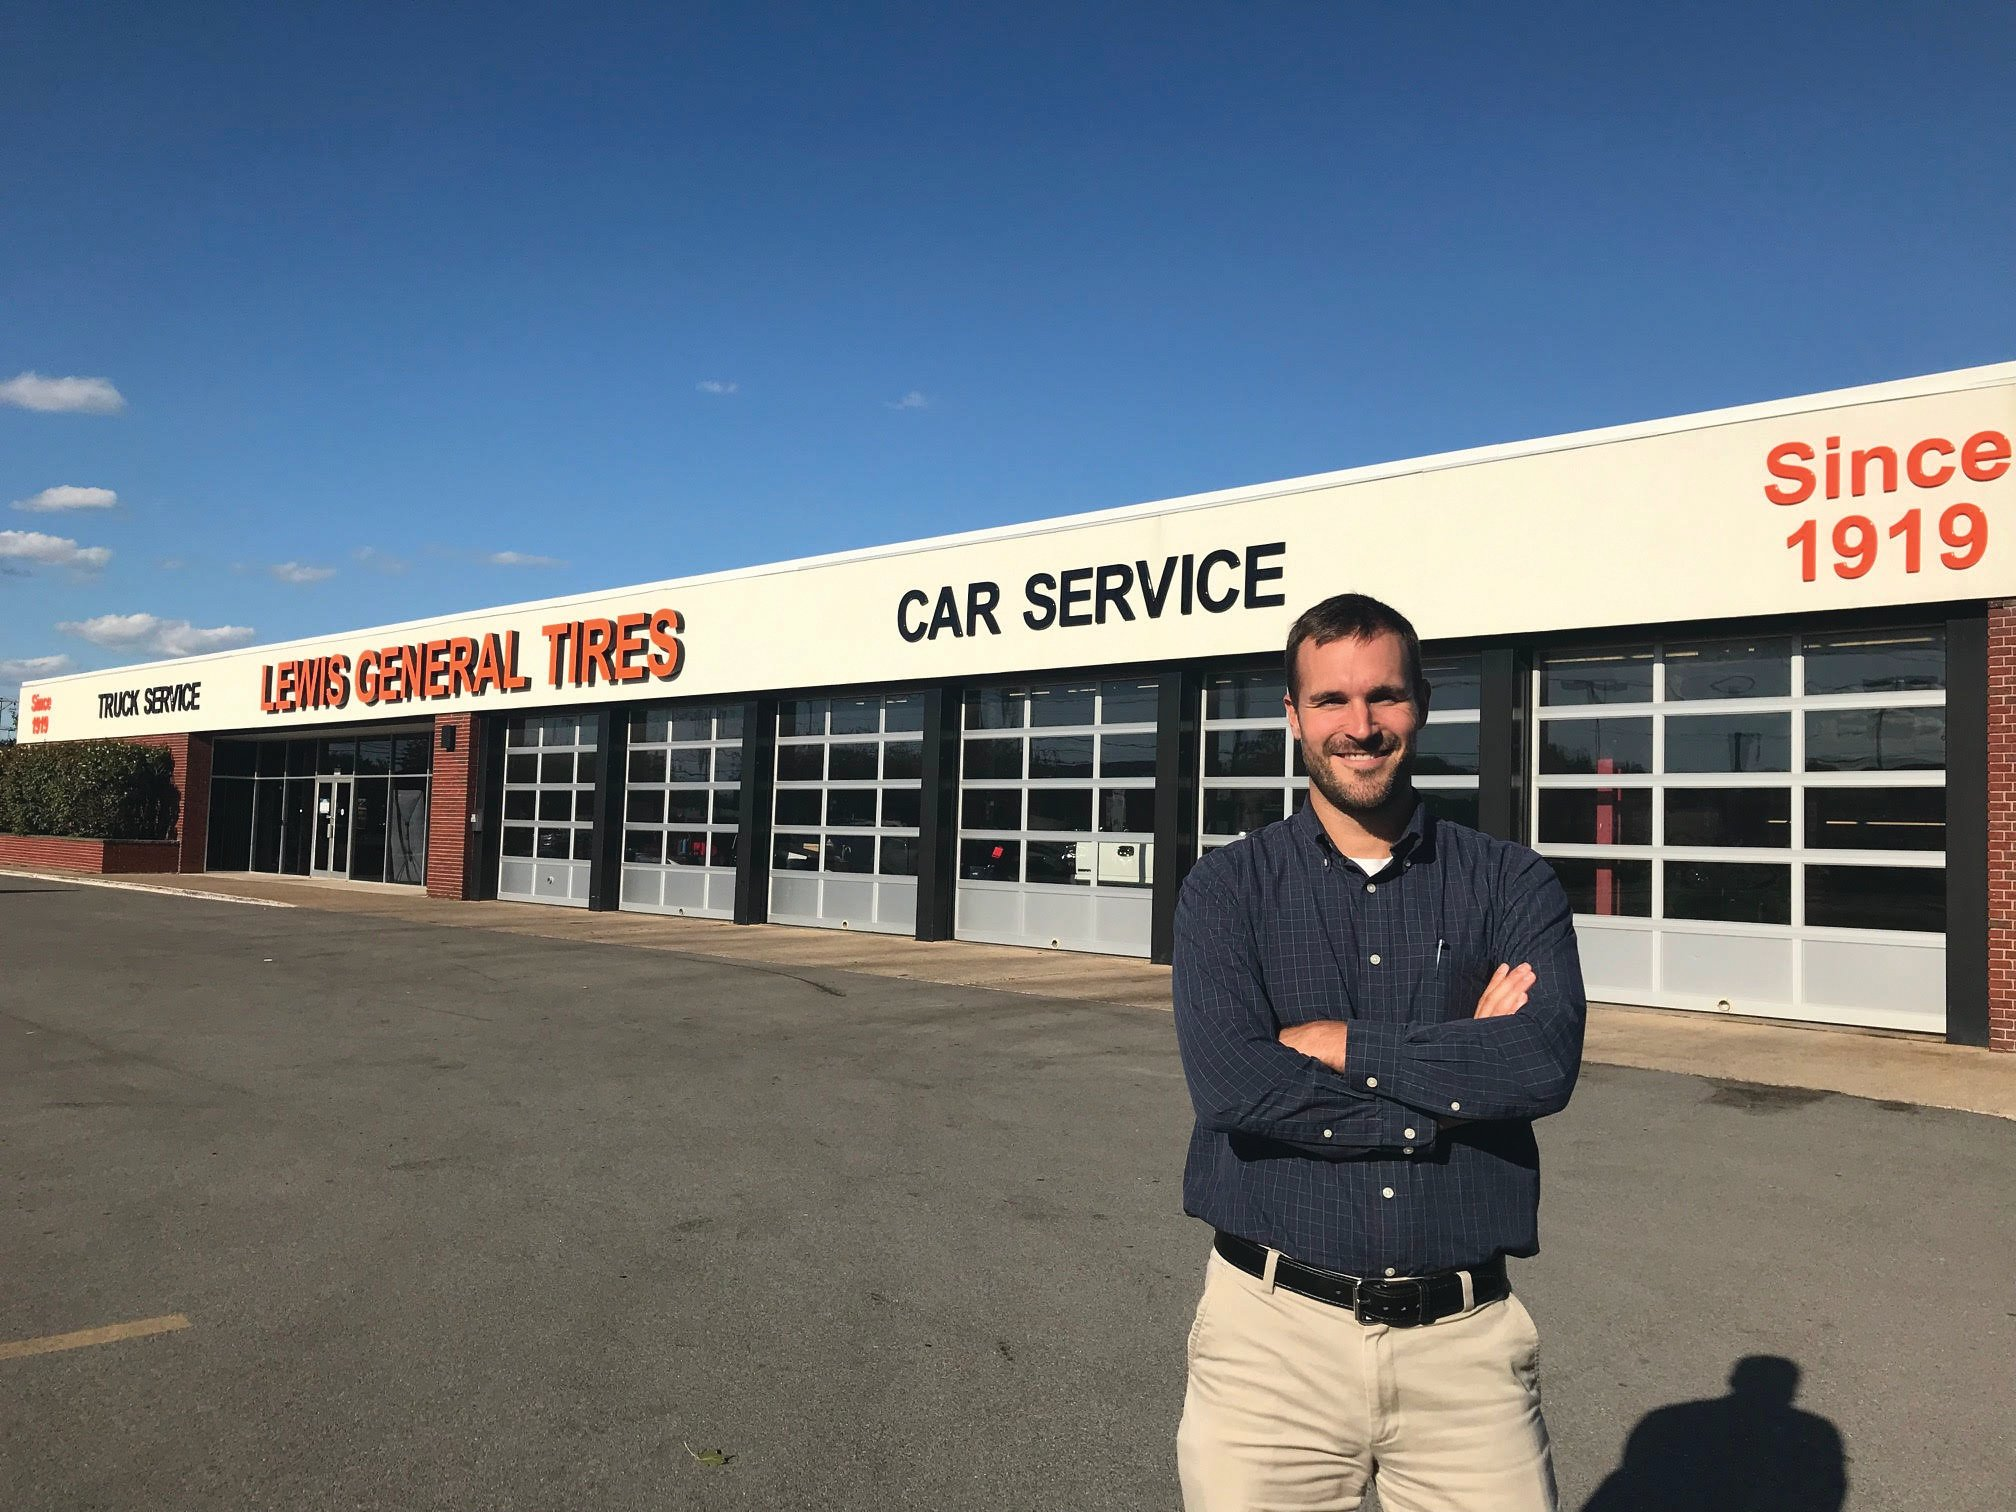 Family Keeps Lewis General Tires Going for 100 Years